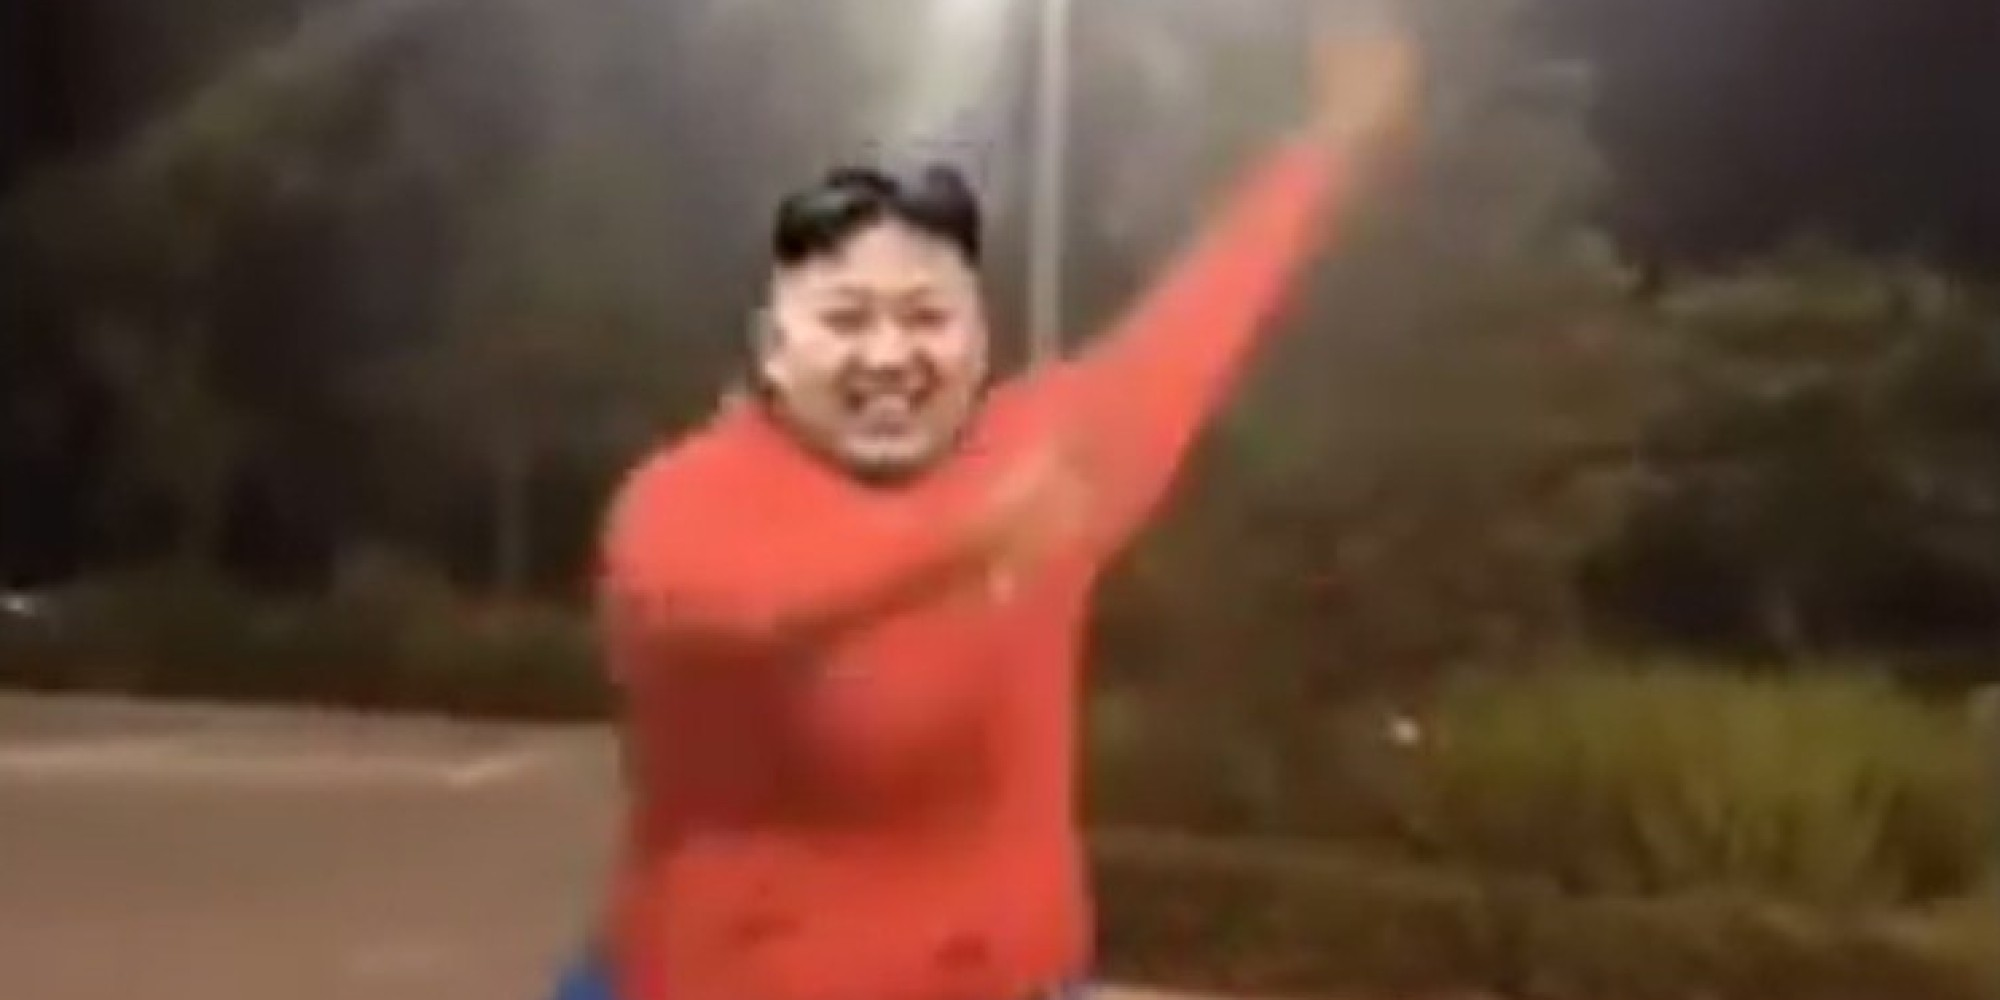 Kim Jong Un Really Hates This Video And Wants It Off The